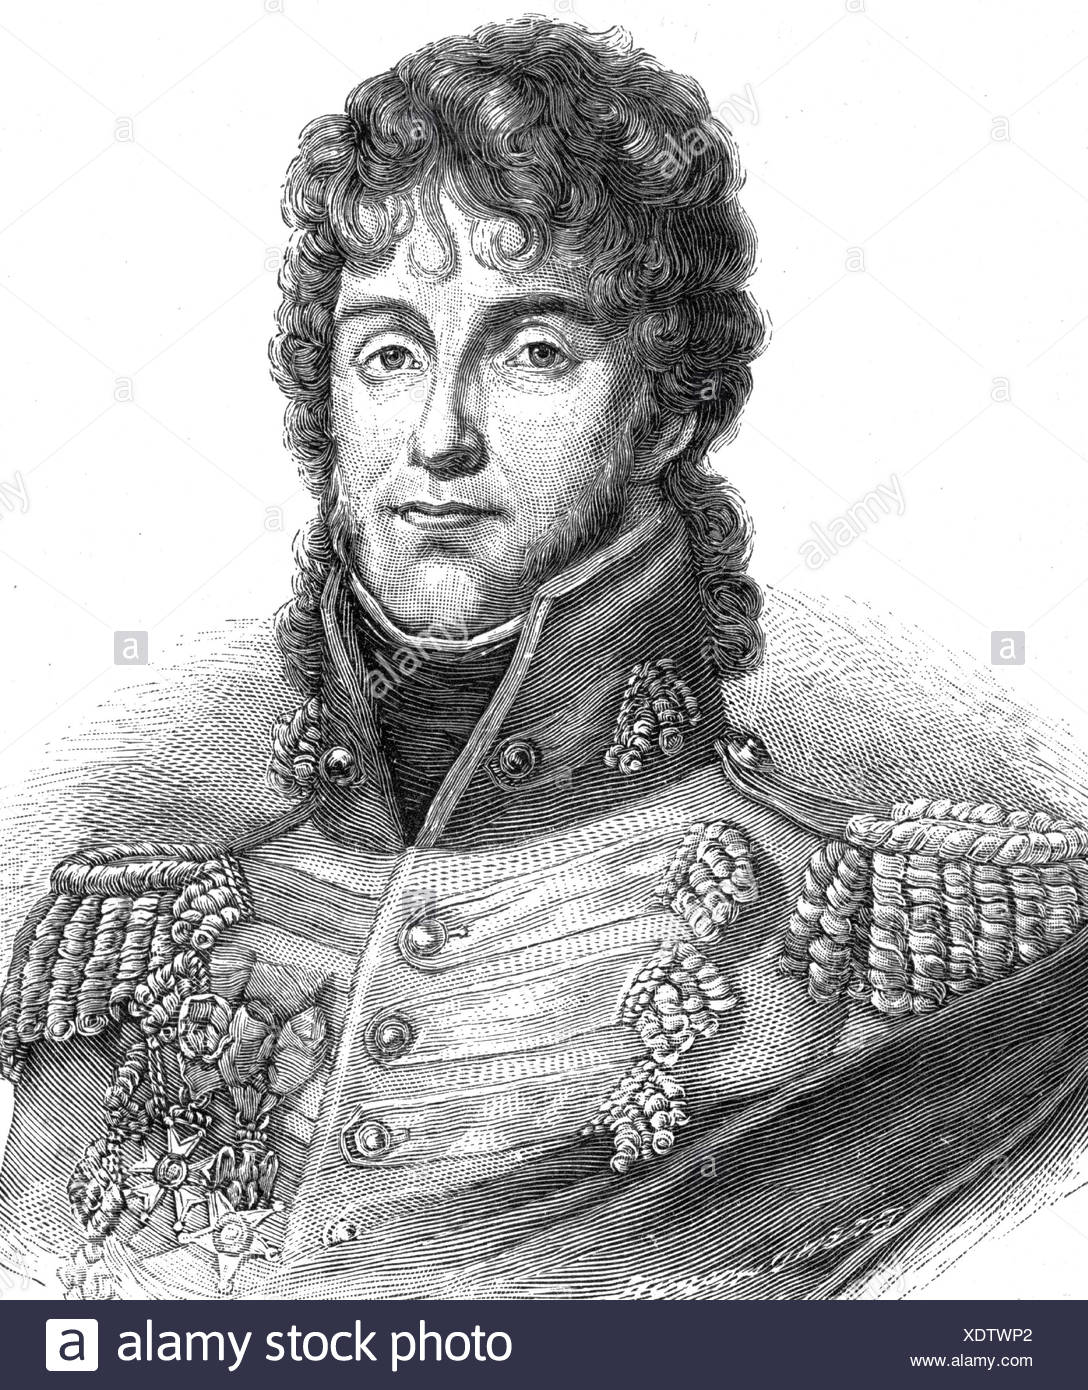 Murat, Joachim, 25.3.1771 - 13.10.1815, French general, portrait, steel engraving by C. E.Weber, 19th century, , Additional-Rights-Clearances-NA - Stock Image